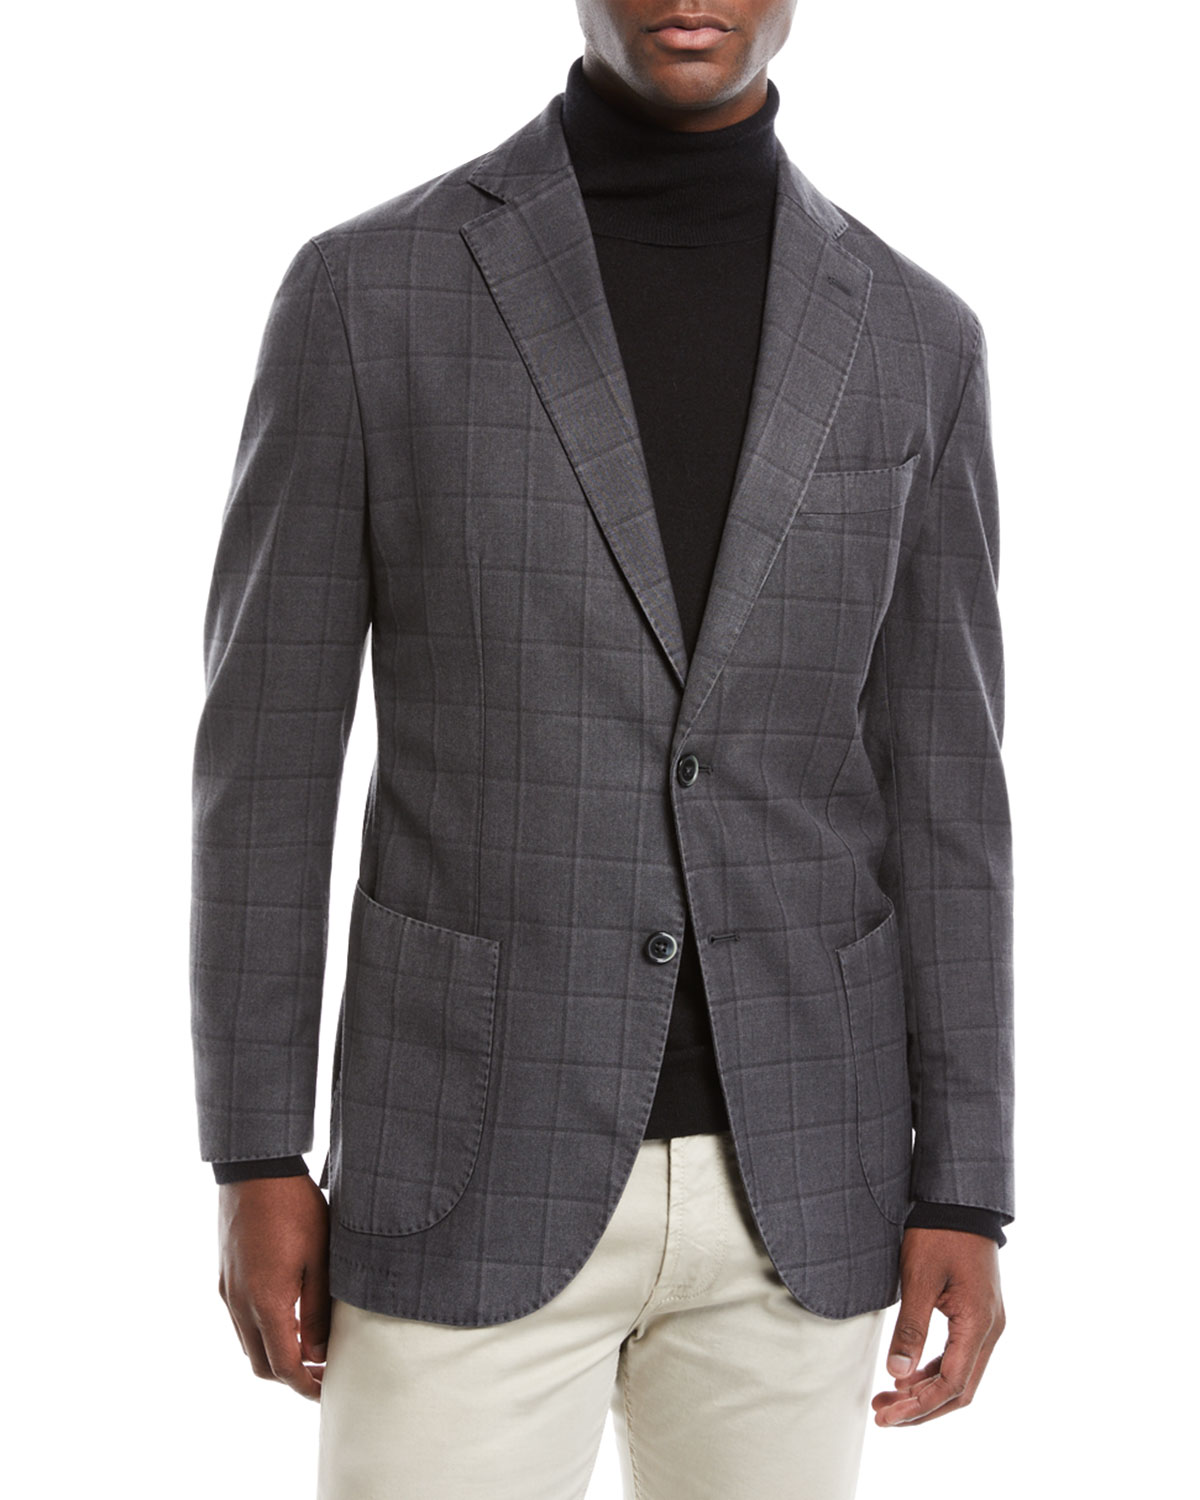 Men's Windowpane 2-Button Jacket